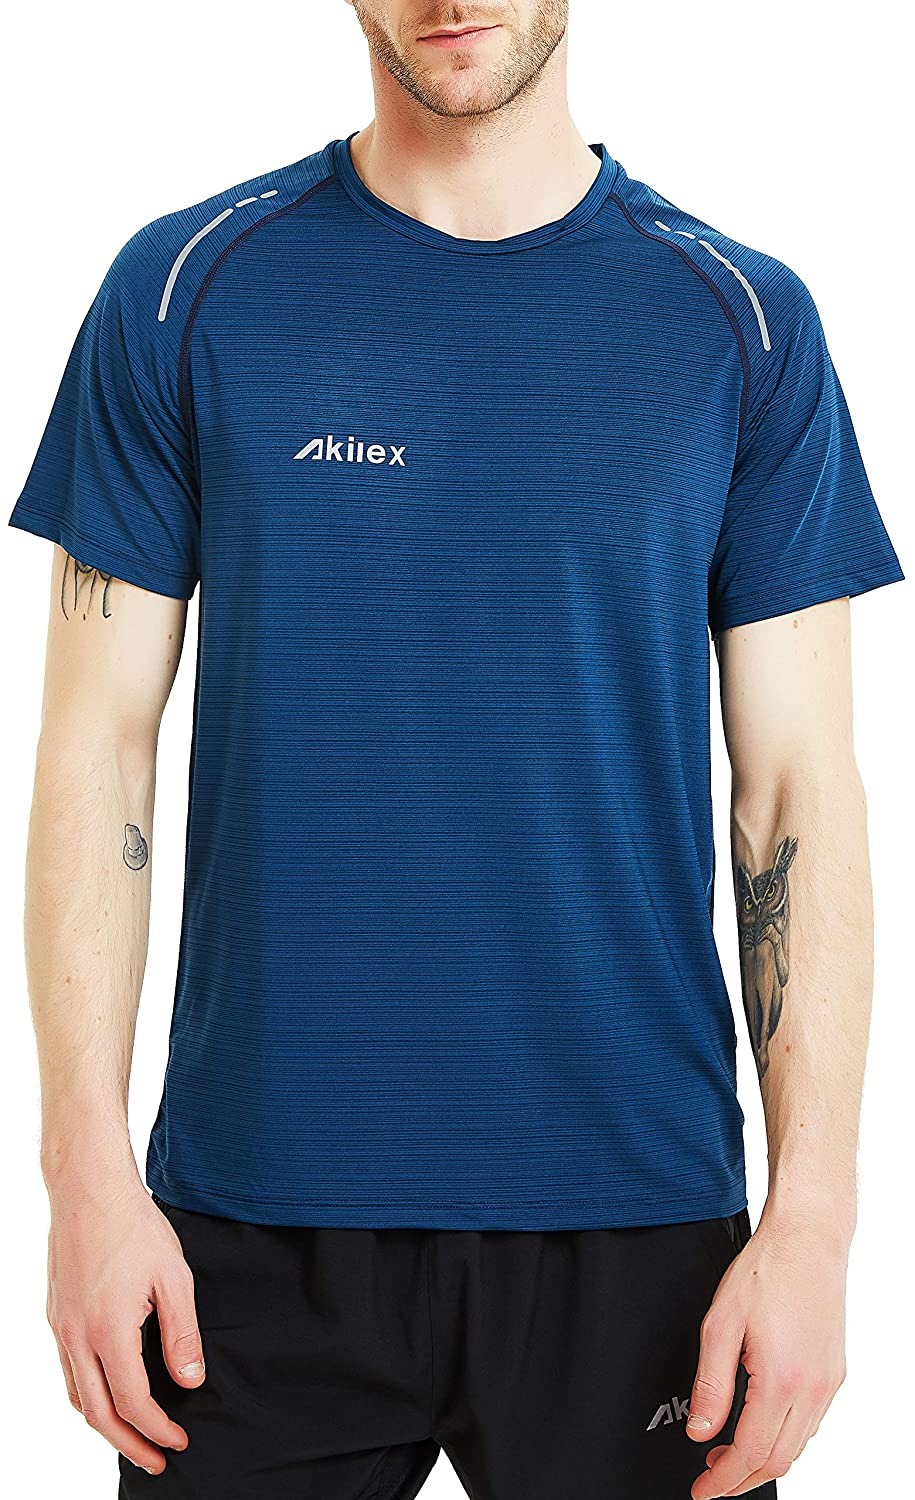 b6575e0bc Akilex Men's Running Dry Fit T-Shirt Athletic Outdoor Short Sleeve  Comfortable Top (XXL, Dark Cerulean): Amazon.com.au: Fashion